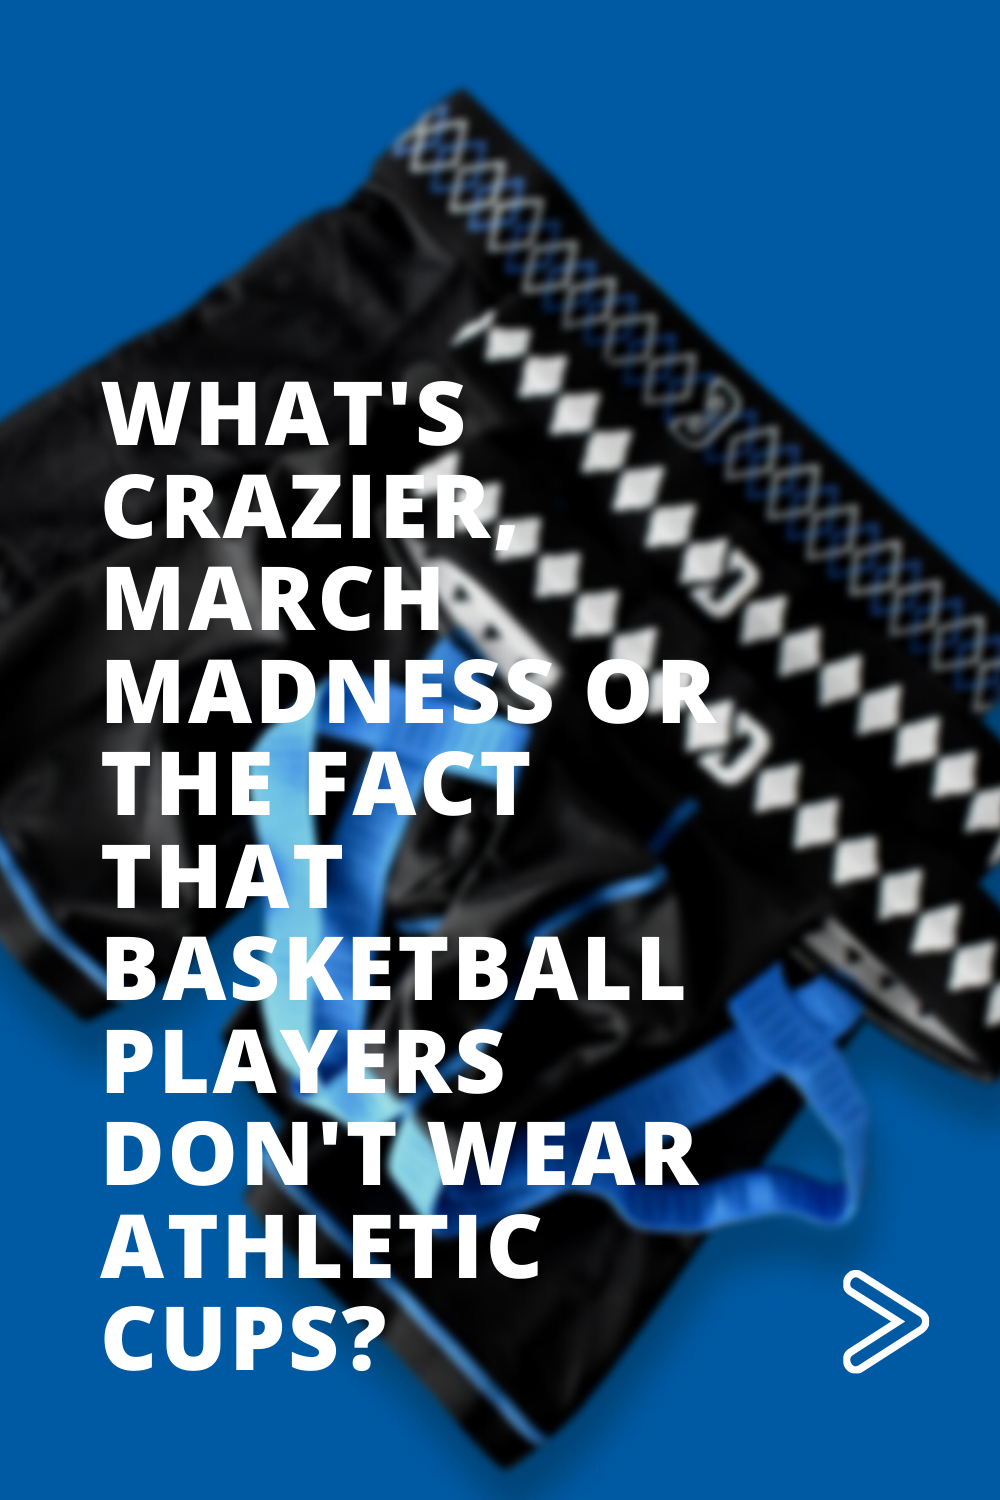 What's Crazier, March Madness or the Fact that Basketball Player Don't Wear Athletic Cups?